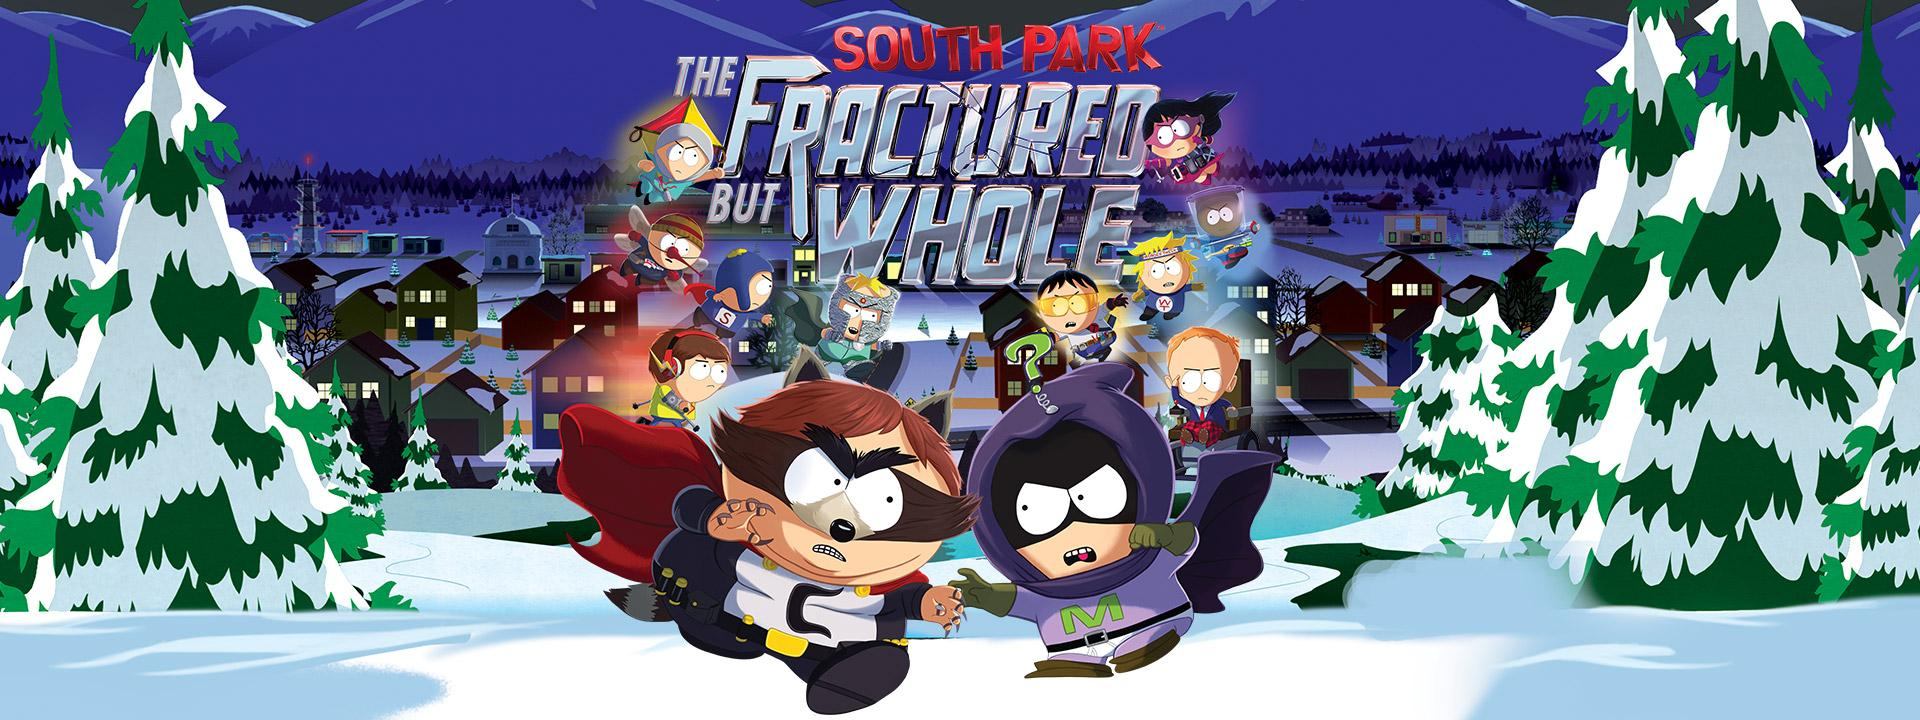 South-Park-The-Fractured-But-Whole-1